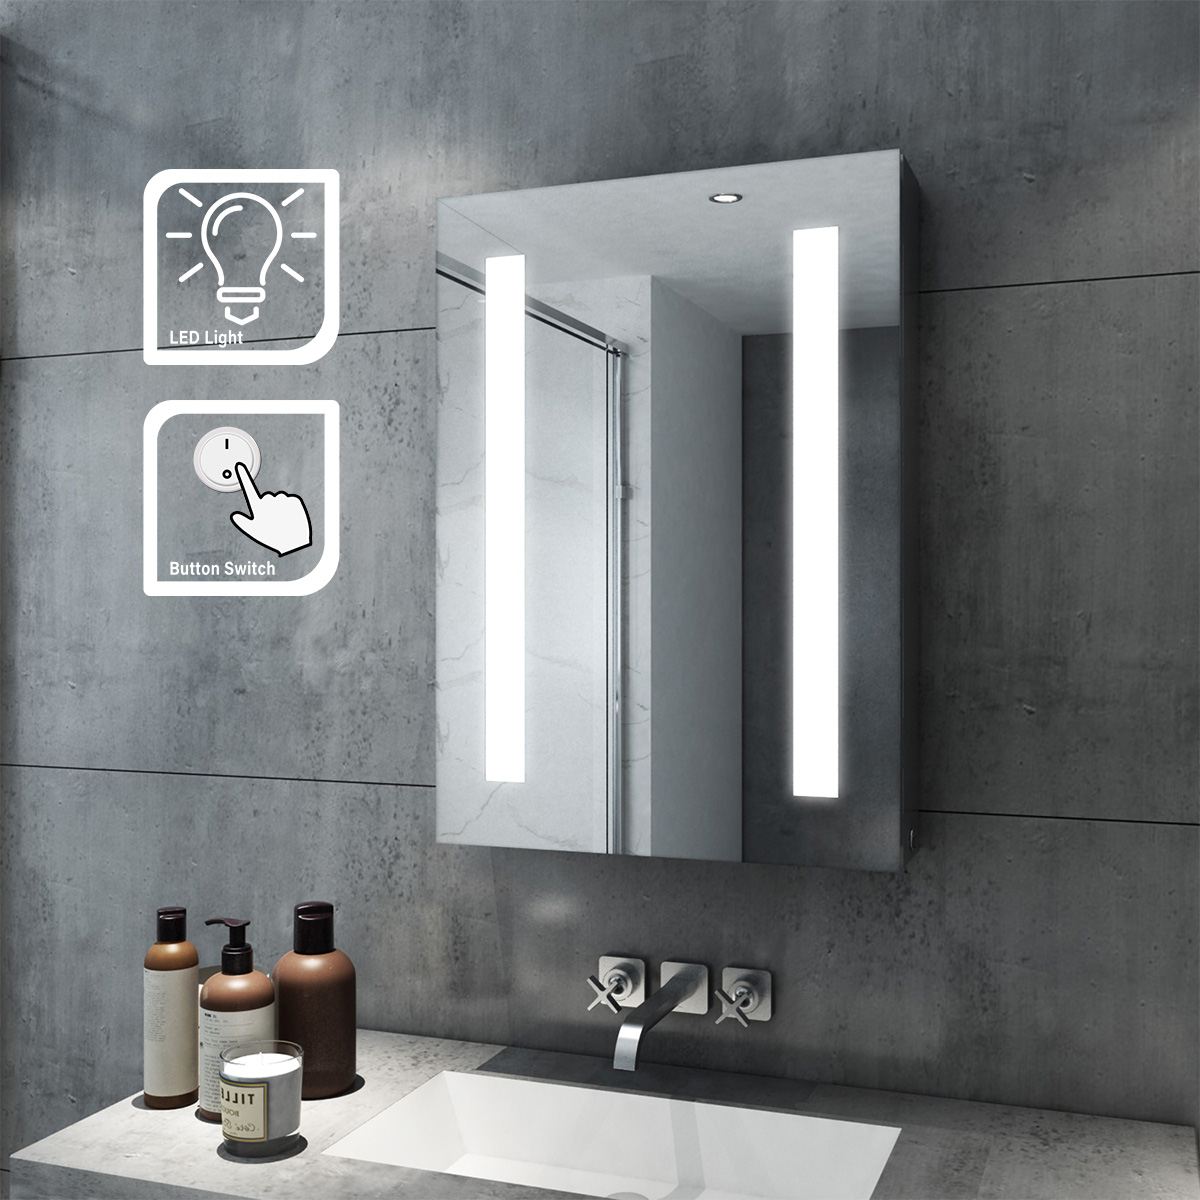 Details about Modern Bathroom Mirror Cabinet With Storage/Demister/Sensor  Switch Multiple Size